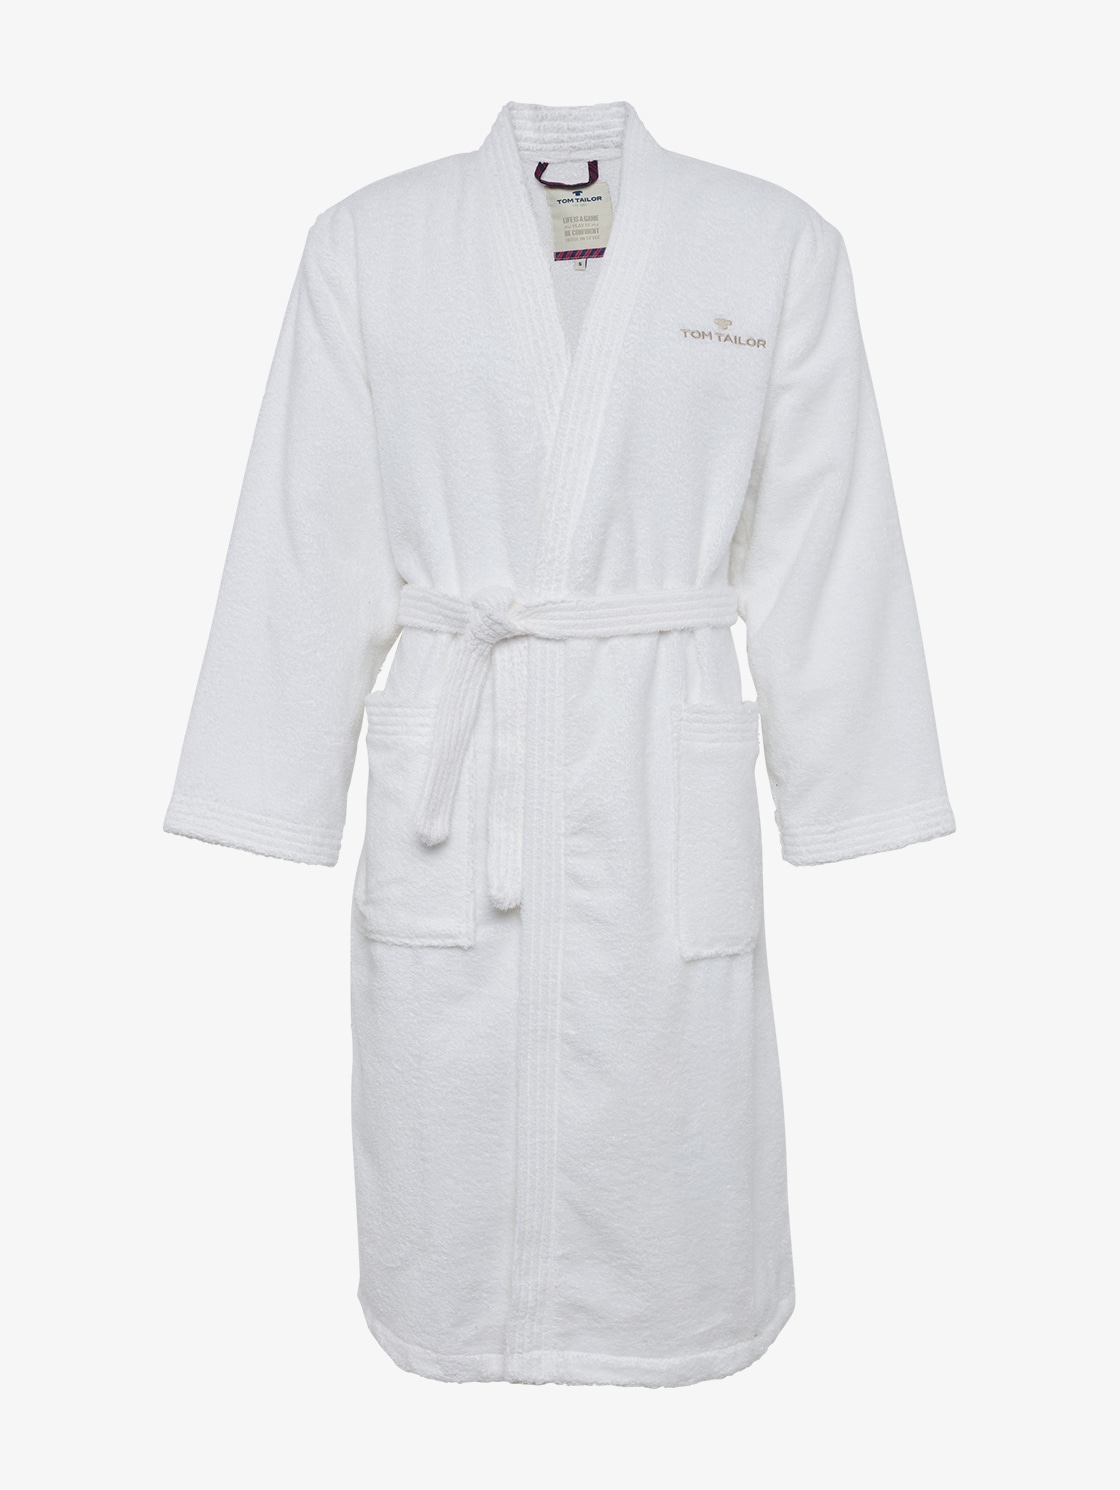 Tom Tailor Basic Bademantel, Unisex, white, Größe: S